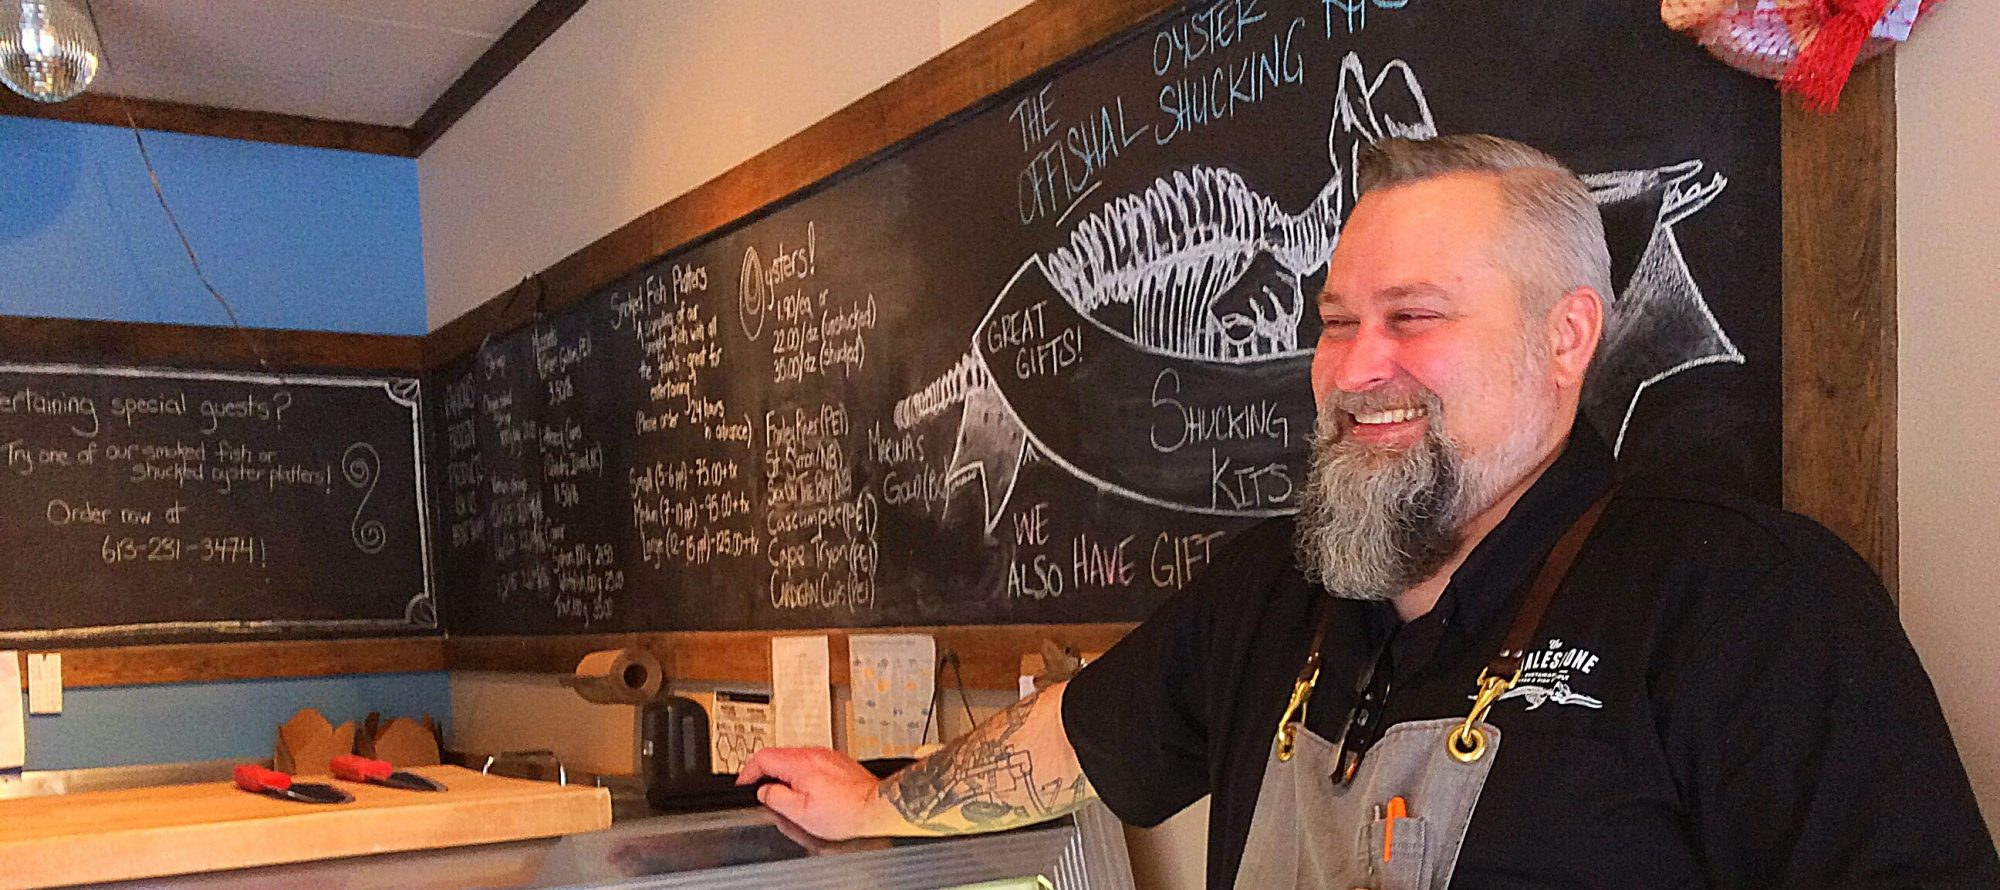 The return of Steve Mitton! Murray Street chef joins the Whalesbone team